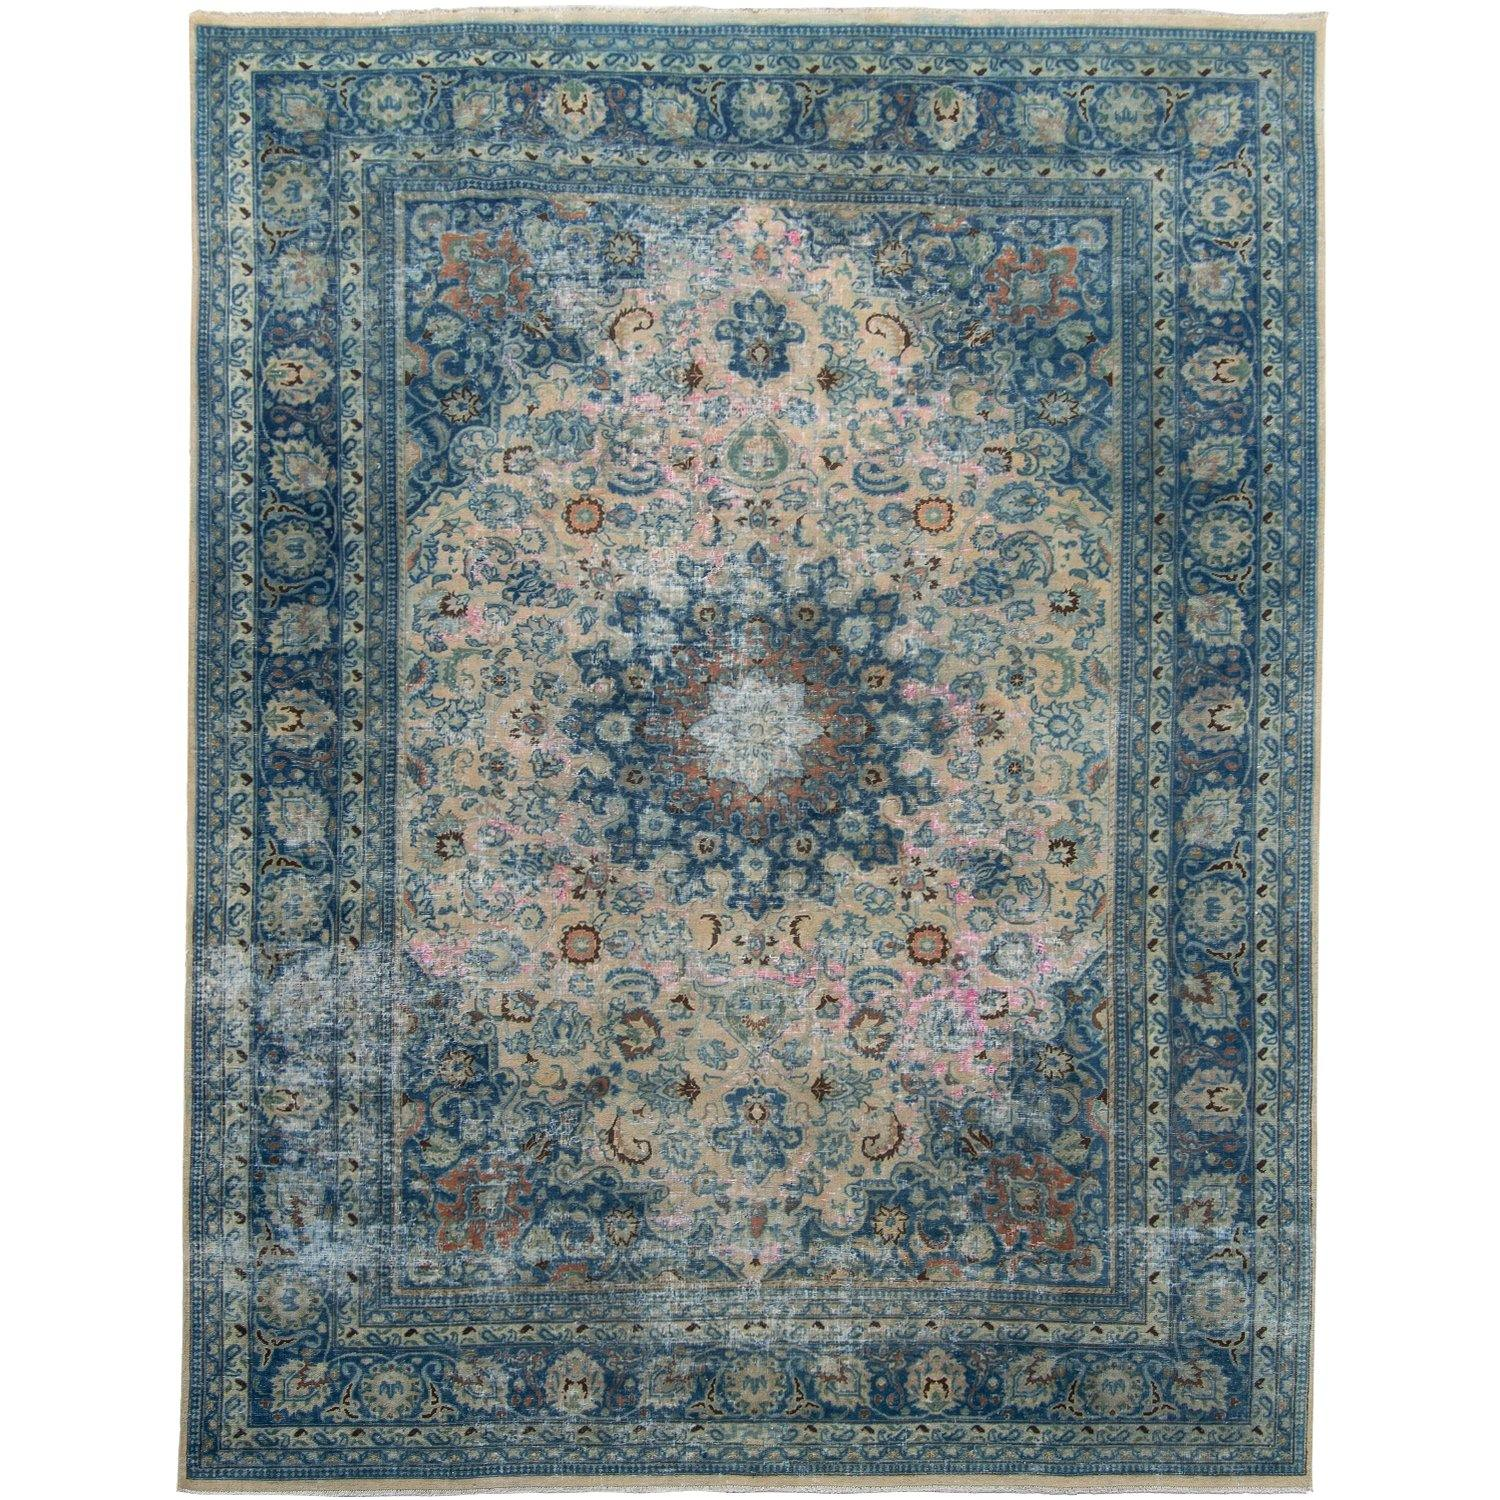 Vintage Persian Hand-knotted  Wool Rug 280cm x 368cm Persian-Rug | House-of-Haghi | NewMarket | Auckland | NZ | Handmade Persian Rugs | Hand Knotted Persian Rugs